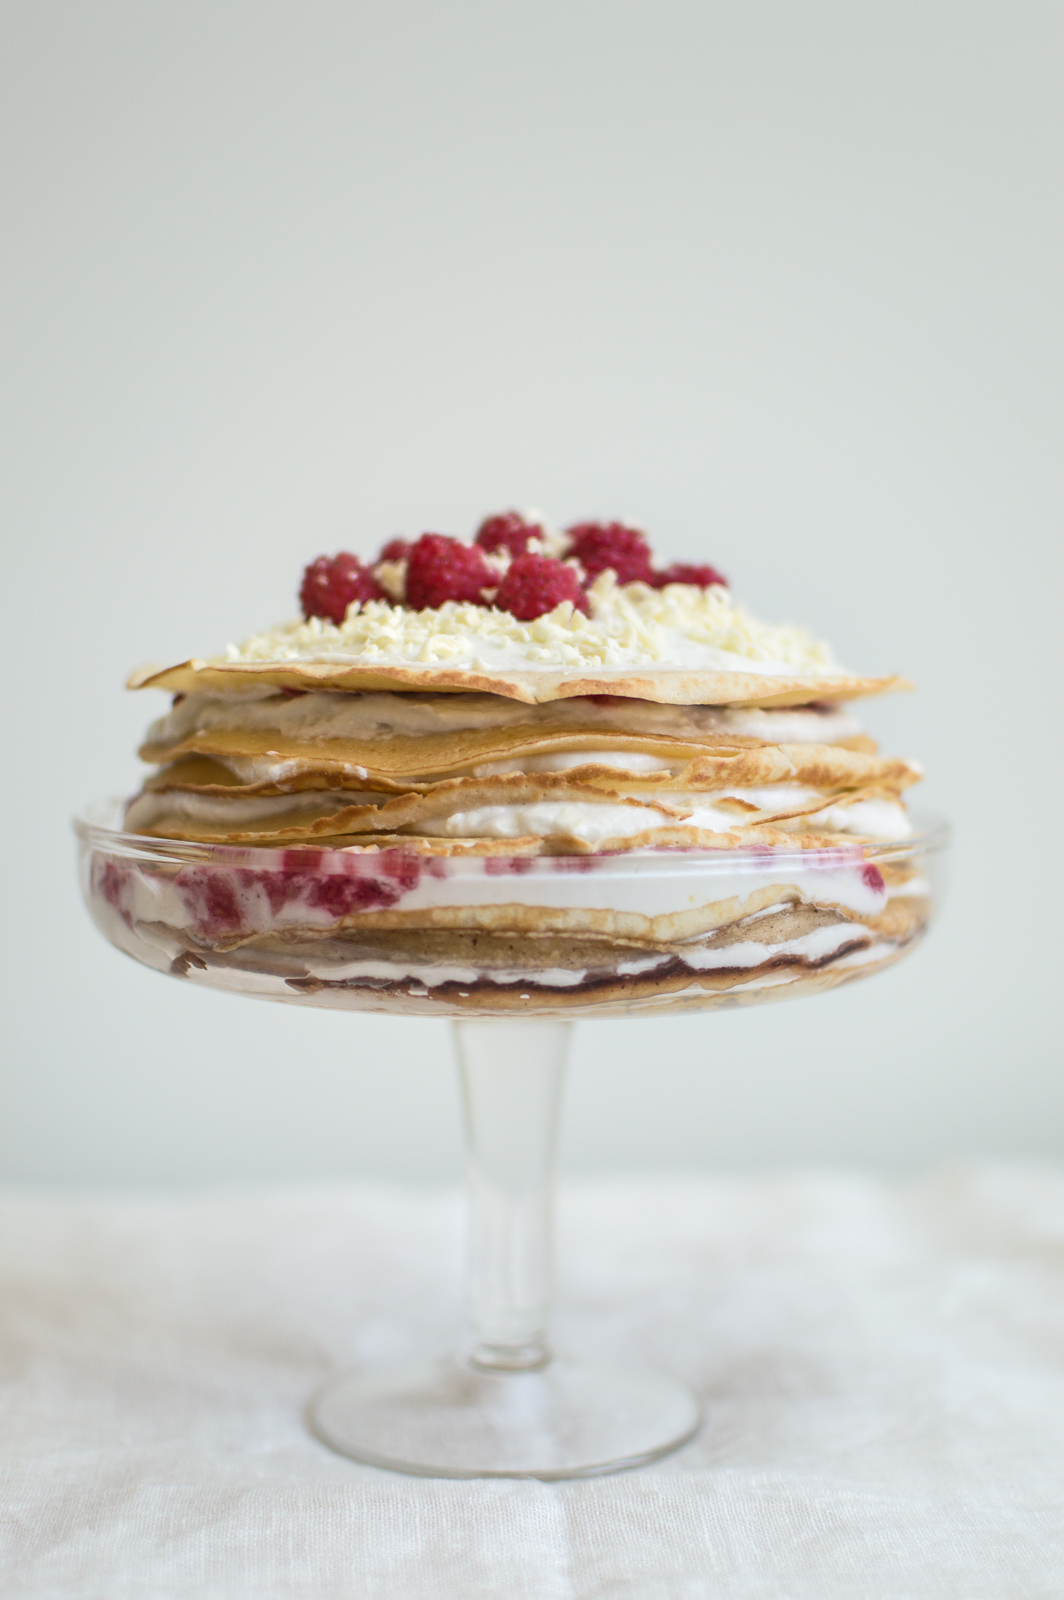 Crepe cake with Coconut White Chocolate Cream & Raspberry sauce   on Due fili d'erba   Two Blades of Grass   Recipe, photos and styling by Thais FK